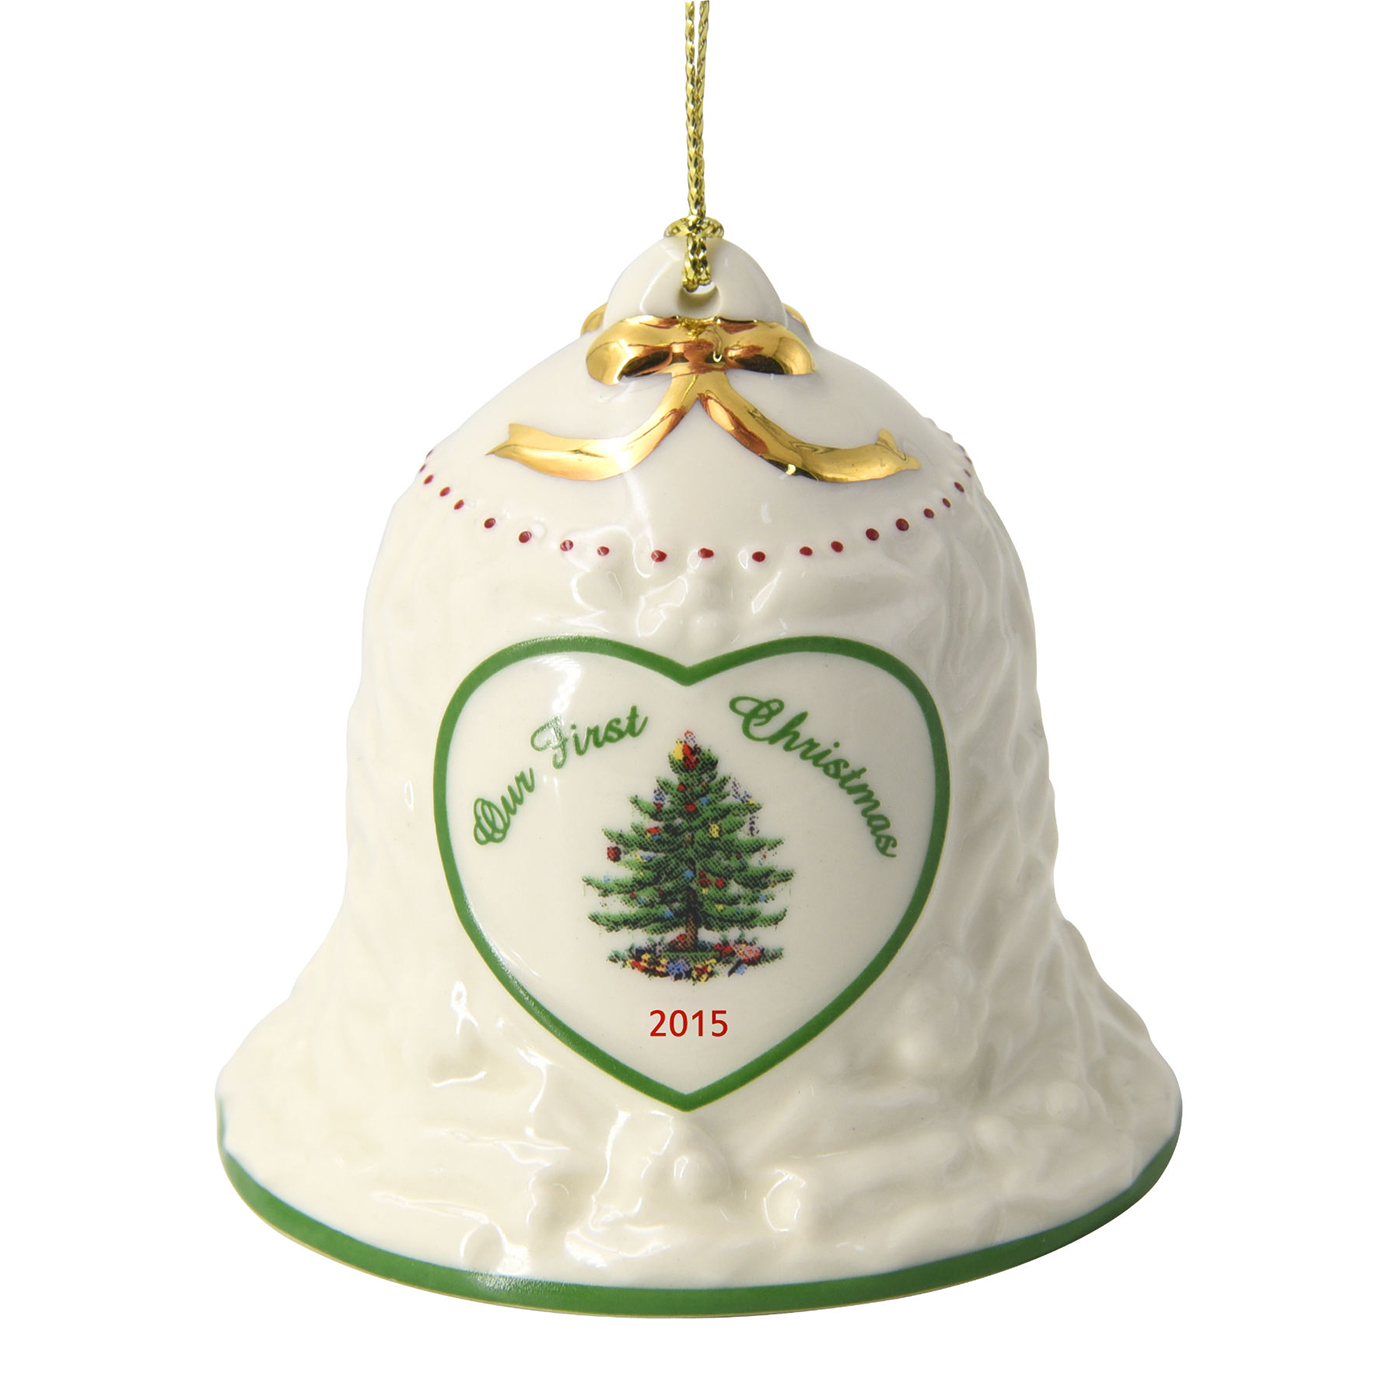 Christmas Tree 2015 Our First Christmas Bell Ornament by Spode